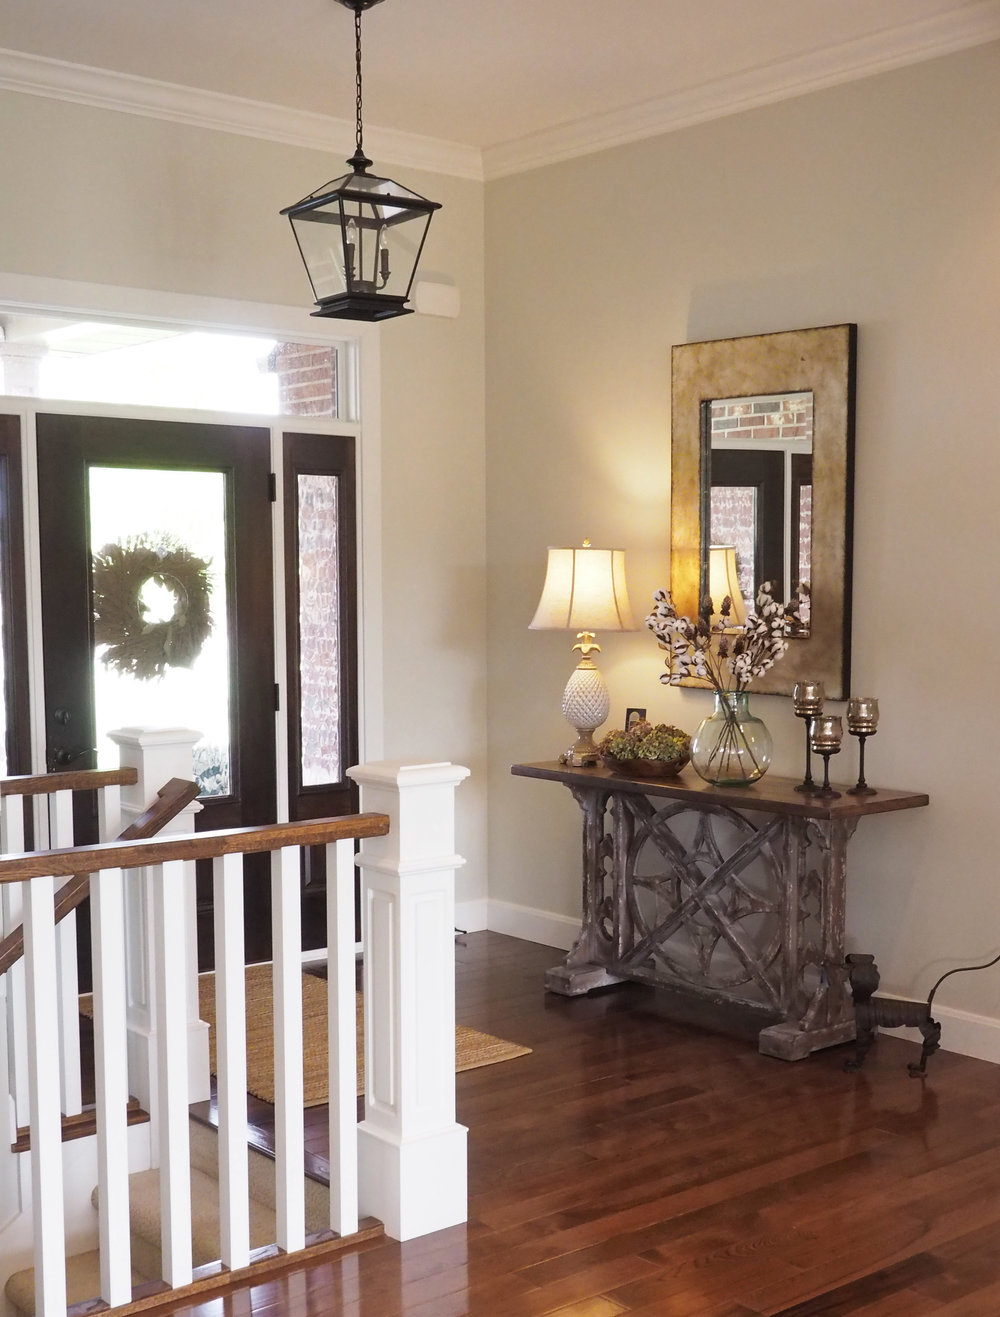 Another daytime view of the foyer paint color, November Rain by Benjamin Moore.